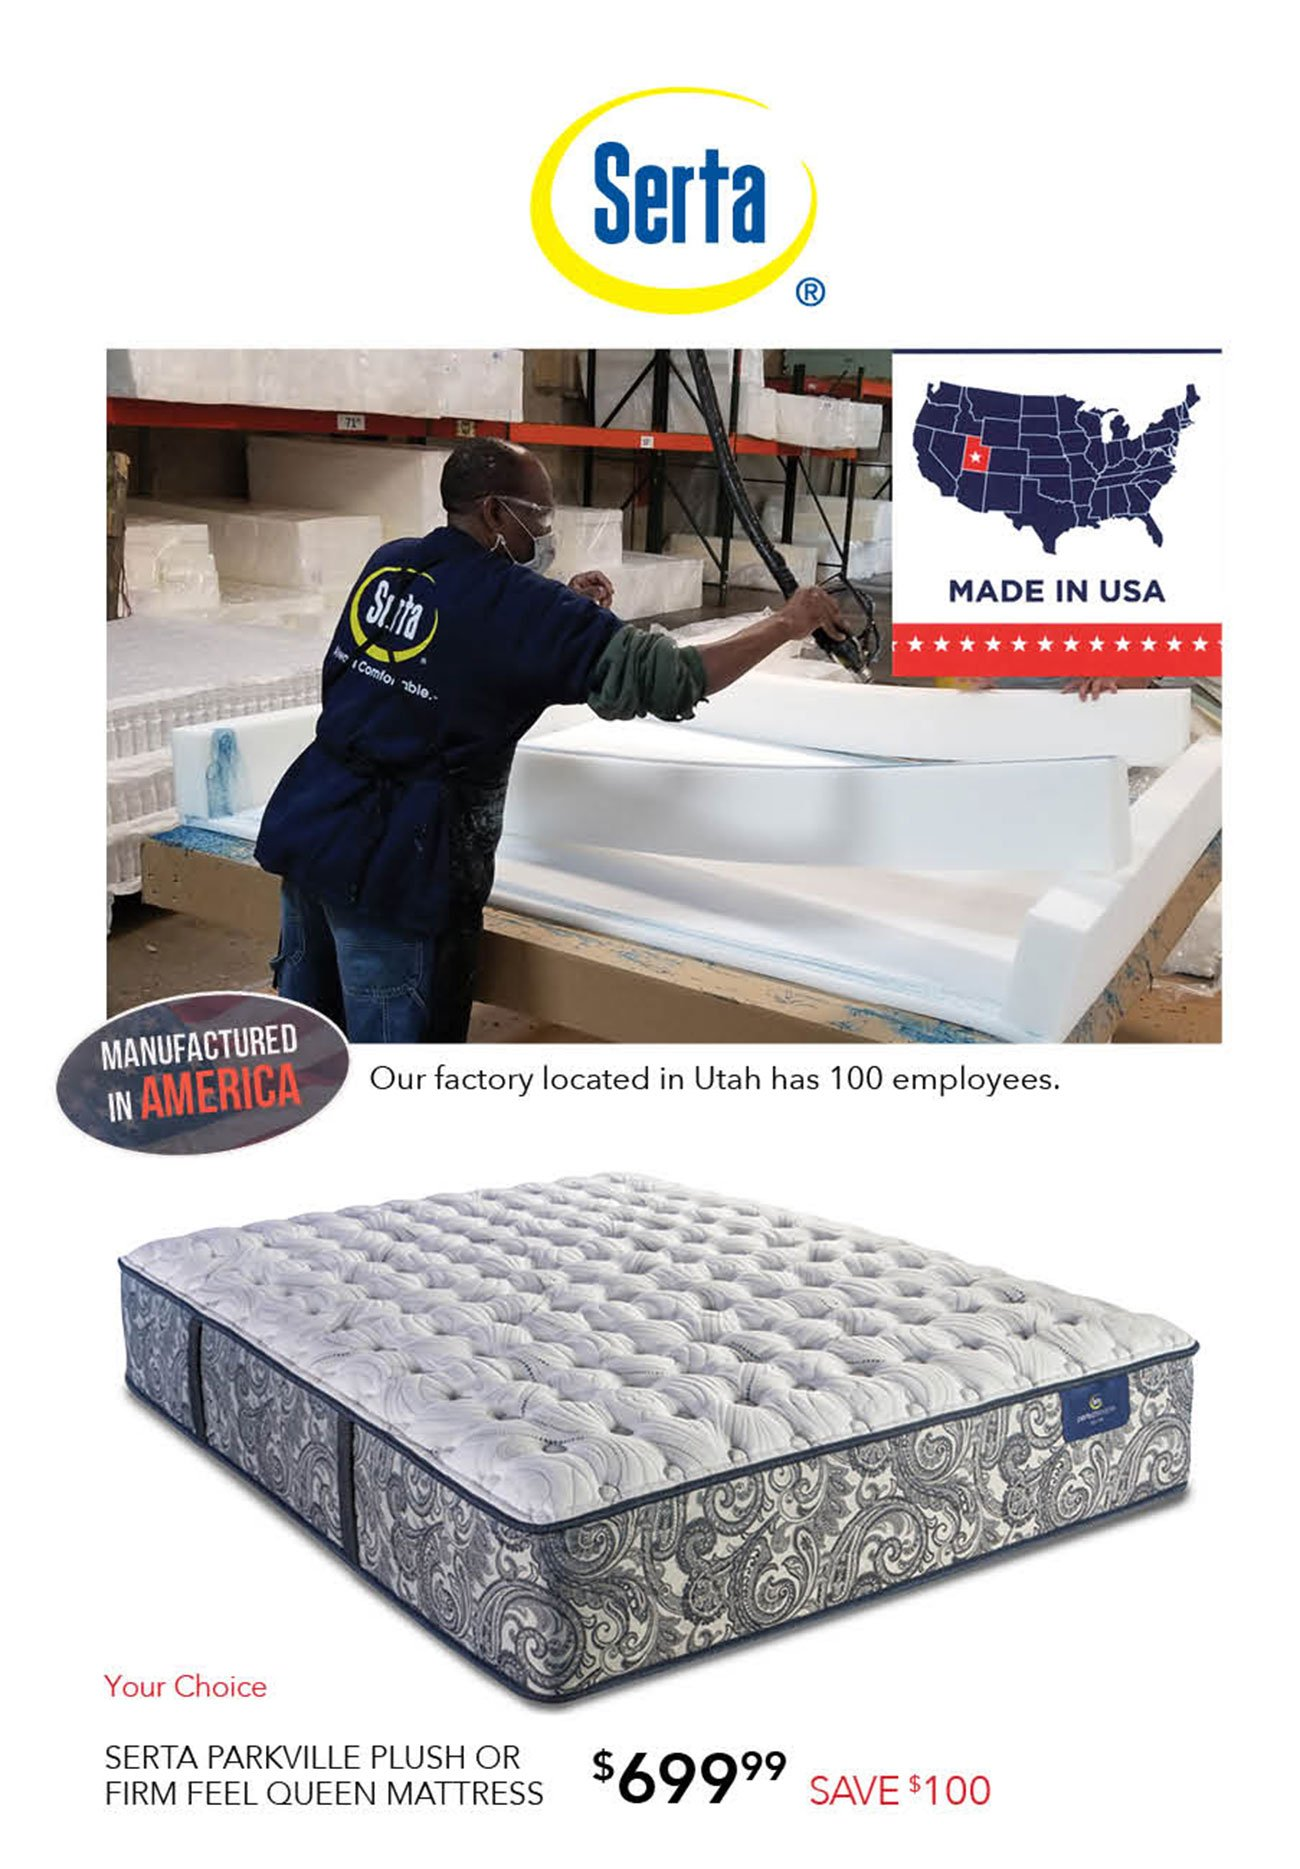 Serta-parkville-queen-mattress